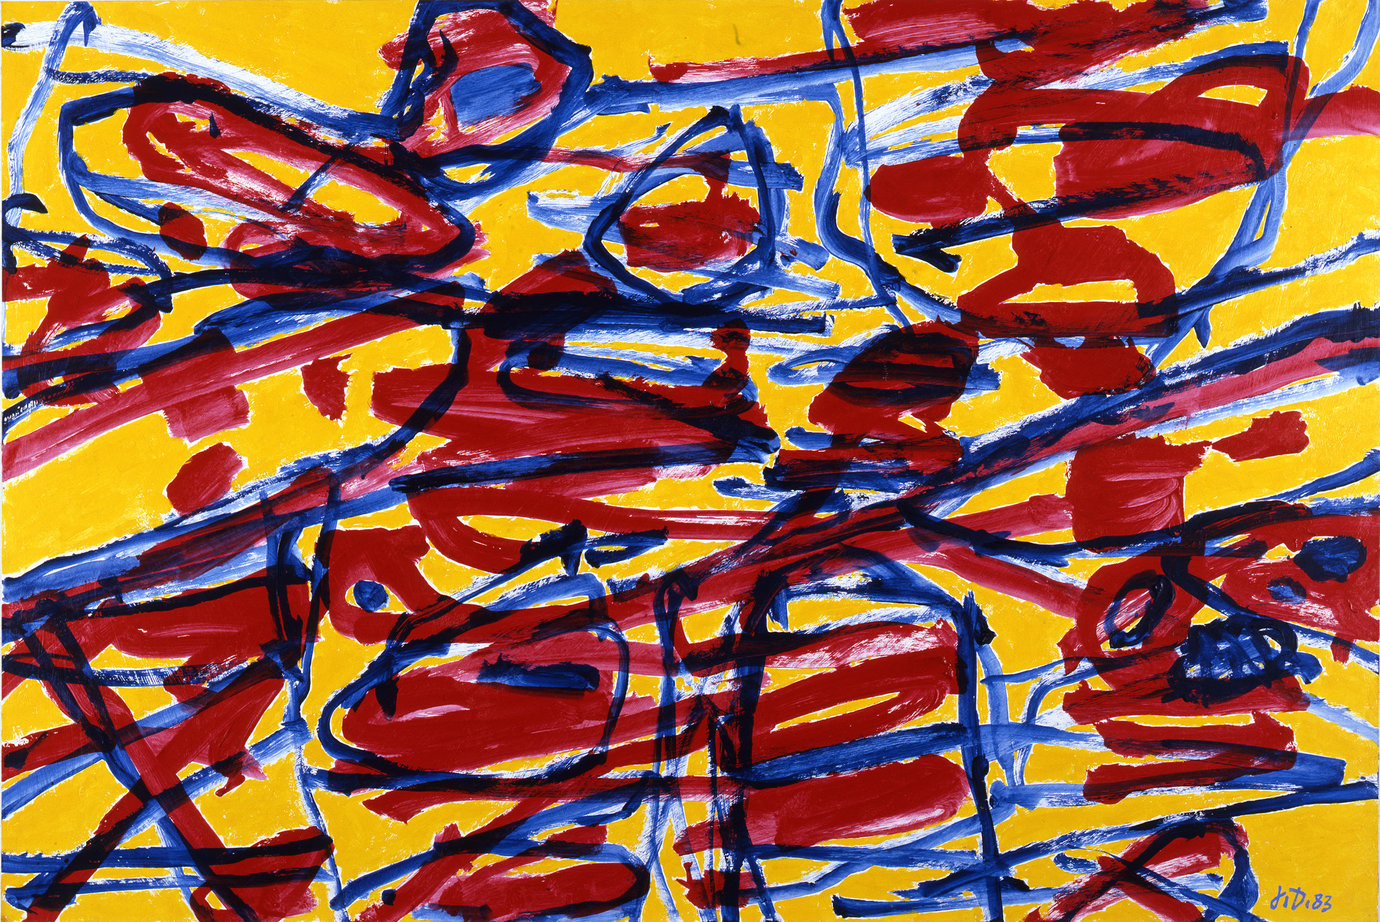 ", June 22, 1983. acrylic on canvas-backed paper, 26-3/8"" x 39-3/8"" (67 cm x 100 cm)."